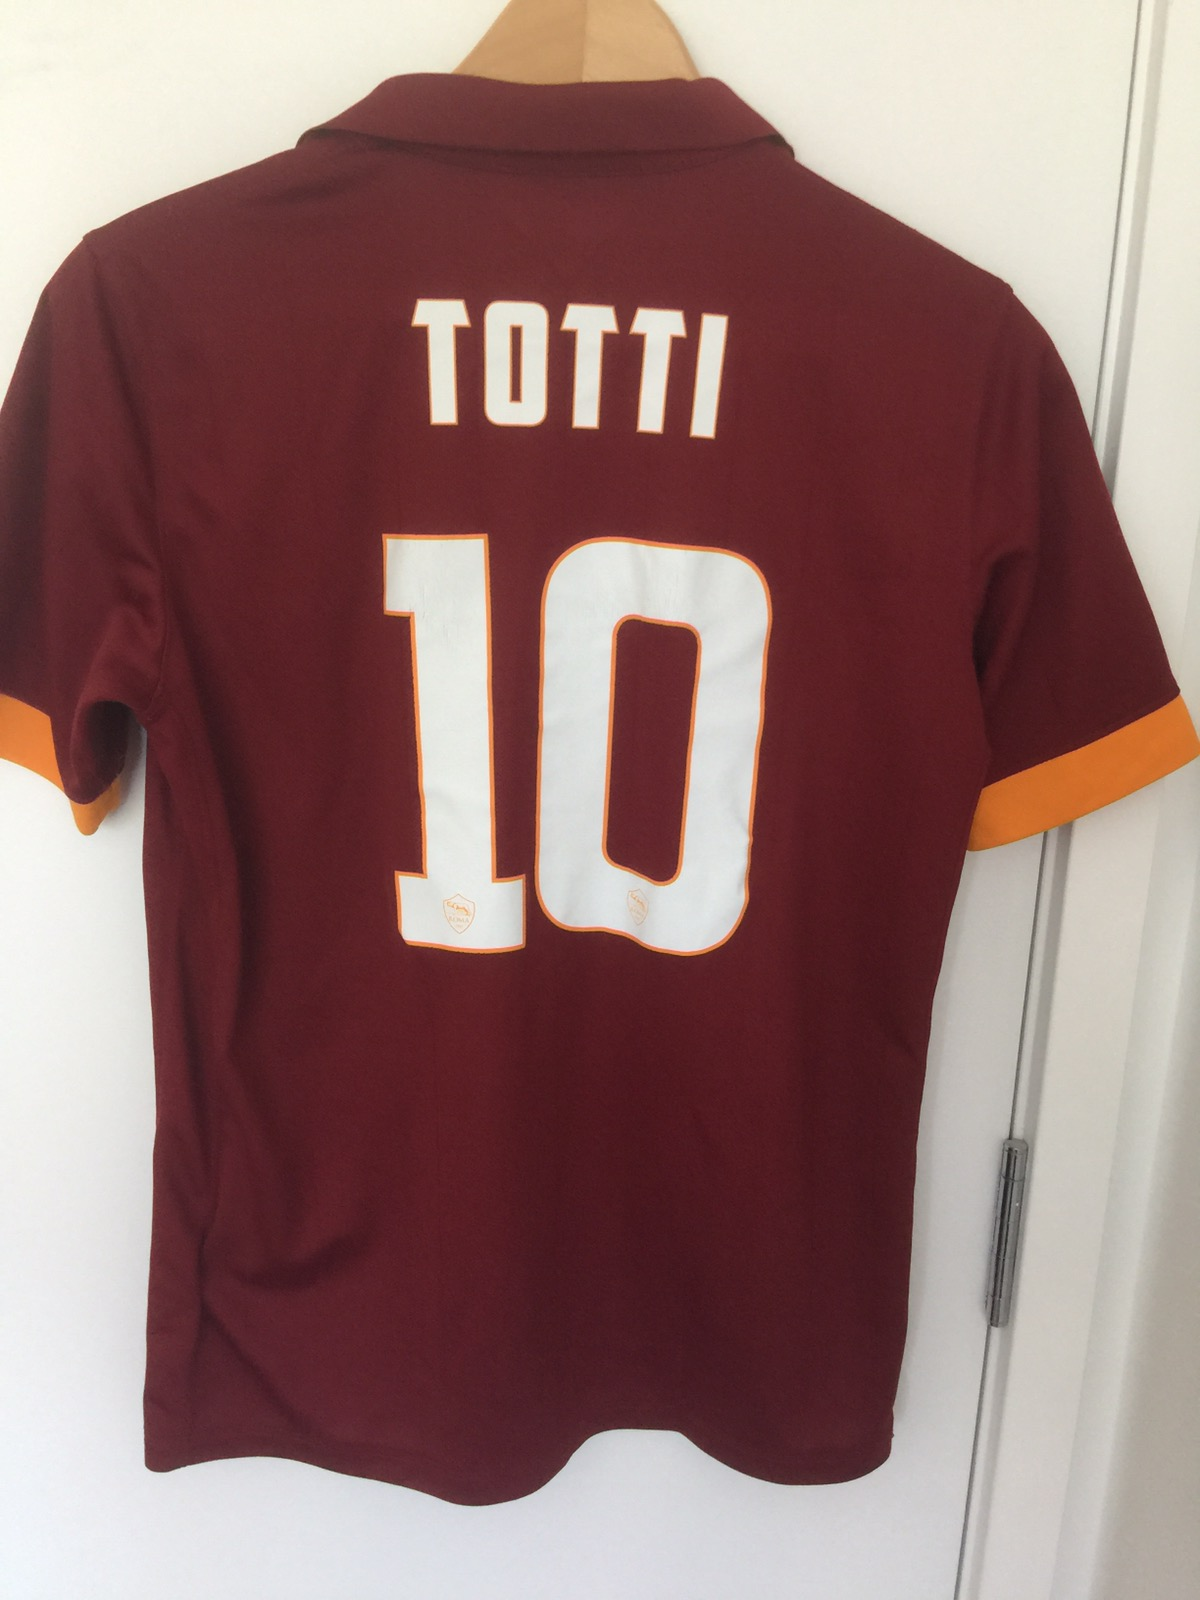 9541fb748 Nike Roma Totti Jersey Size s - Jerseys for Sale - Grailed